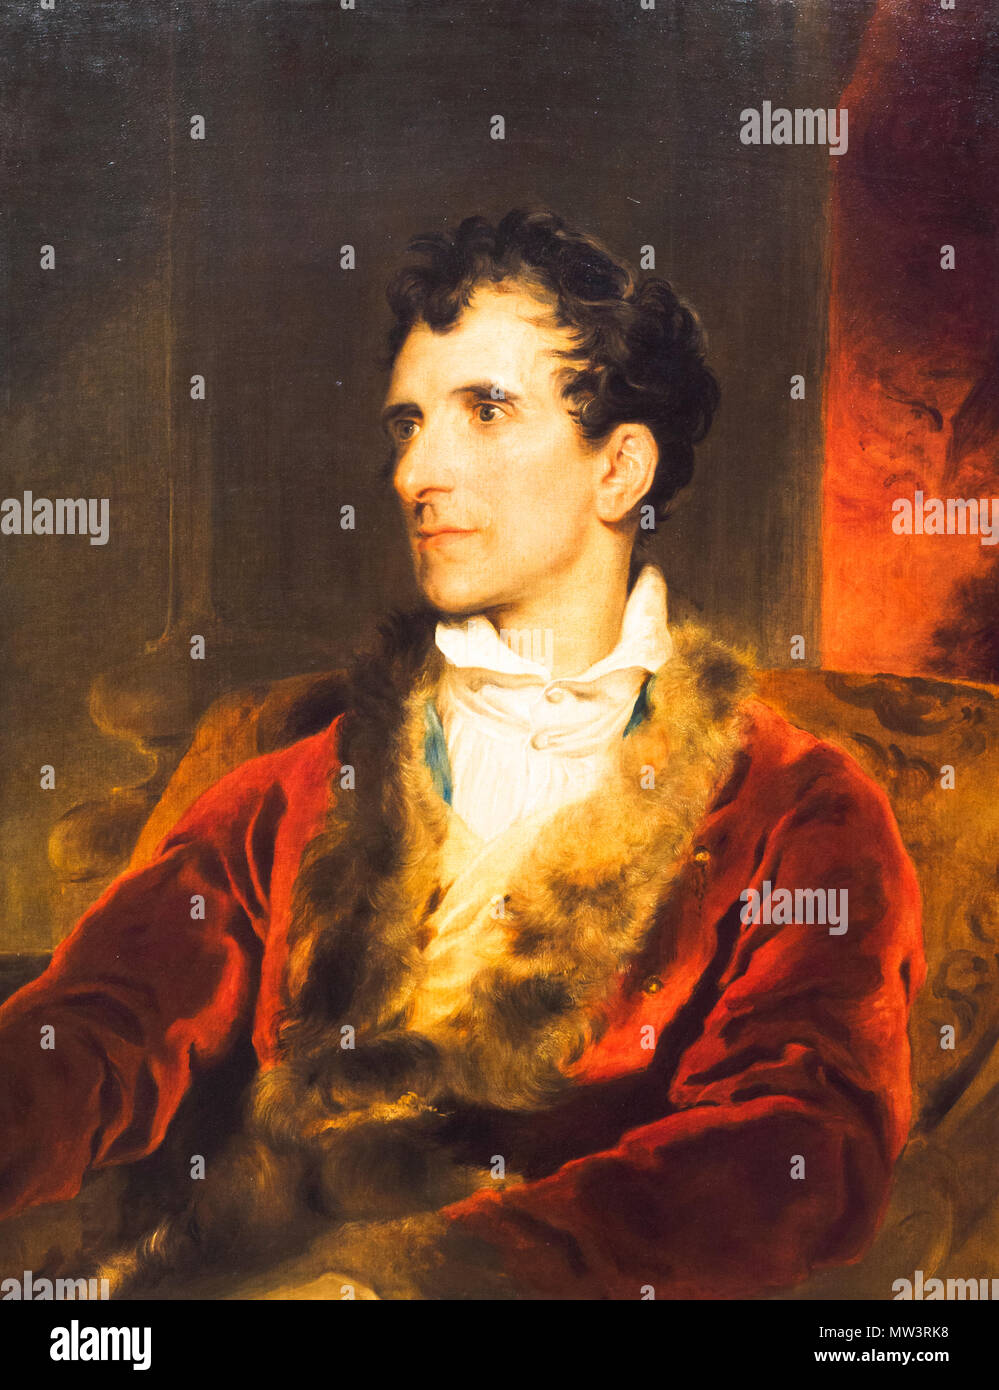 Antonio Canova (1757-1821) by Sir Thomas Lawrence (1769-1830) - Stock Image